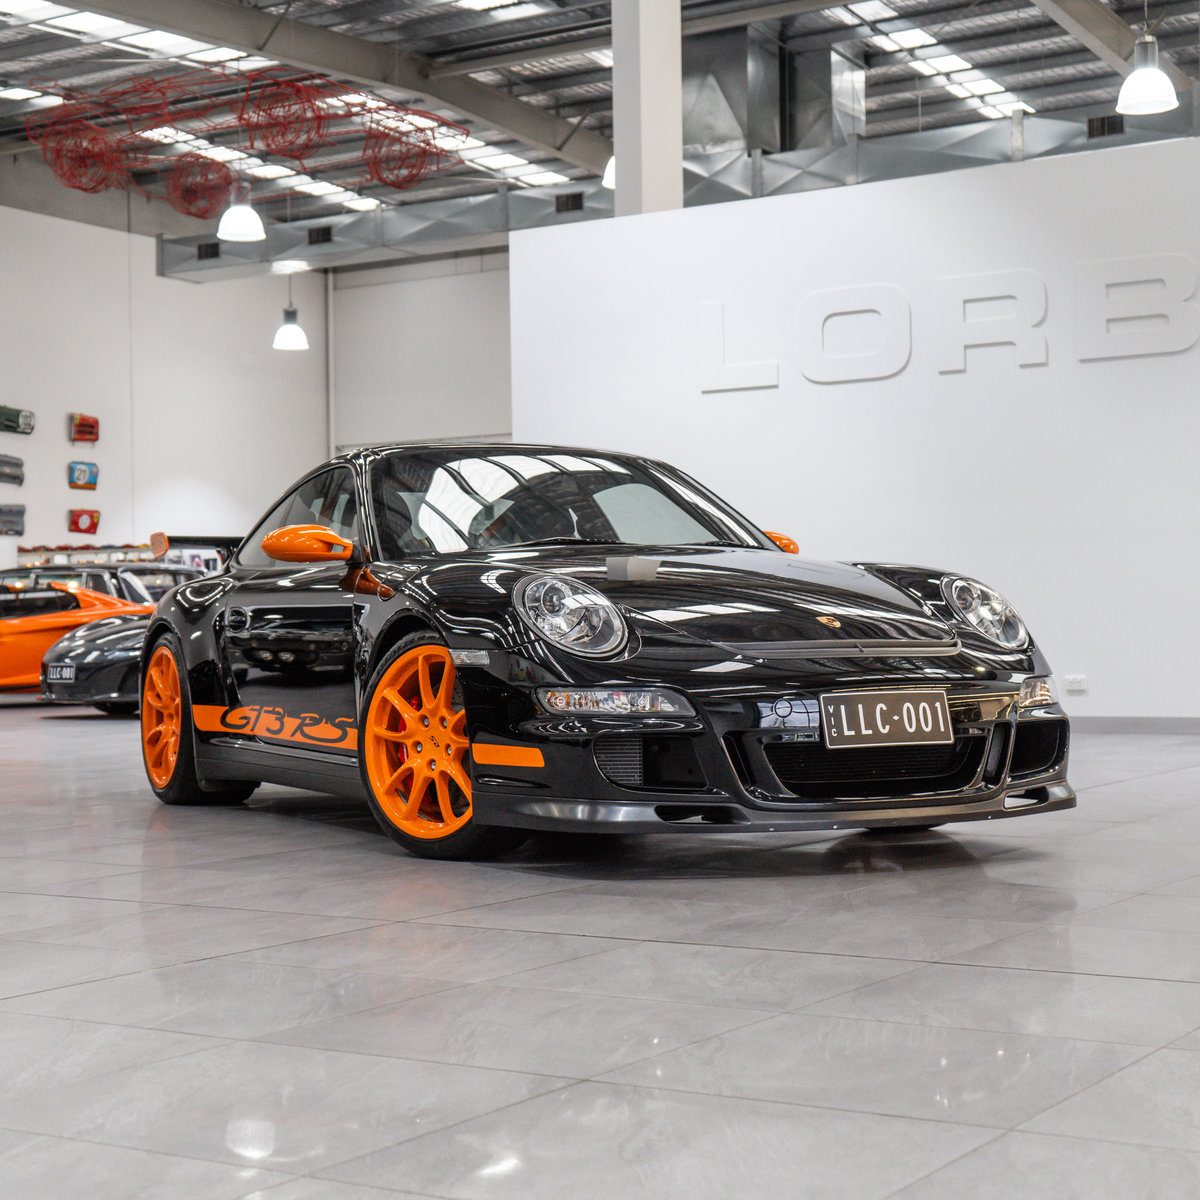 2007 PORSCHE 911 GT3 RS 997.1 For Sale (picture 1 of 6)